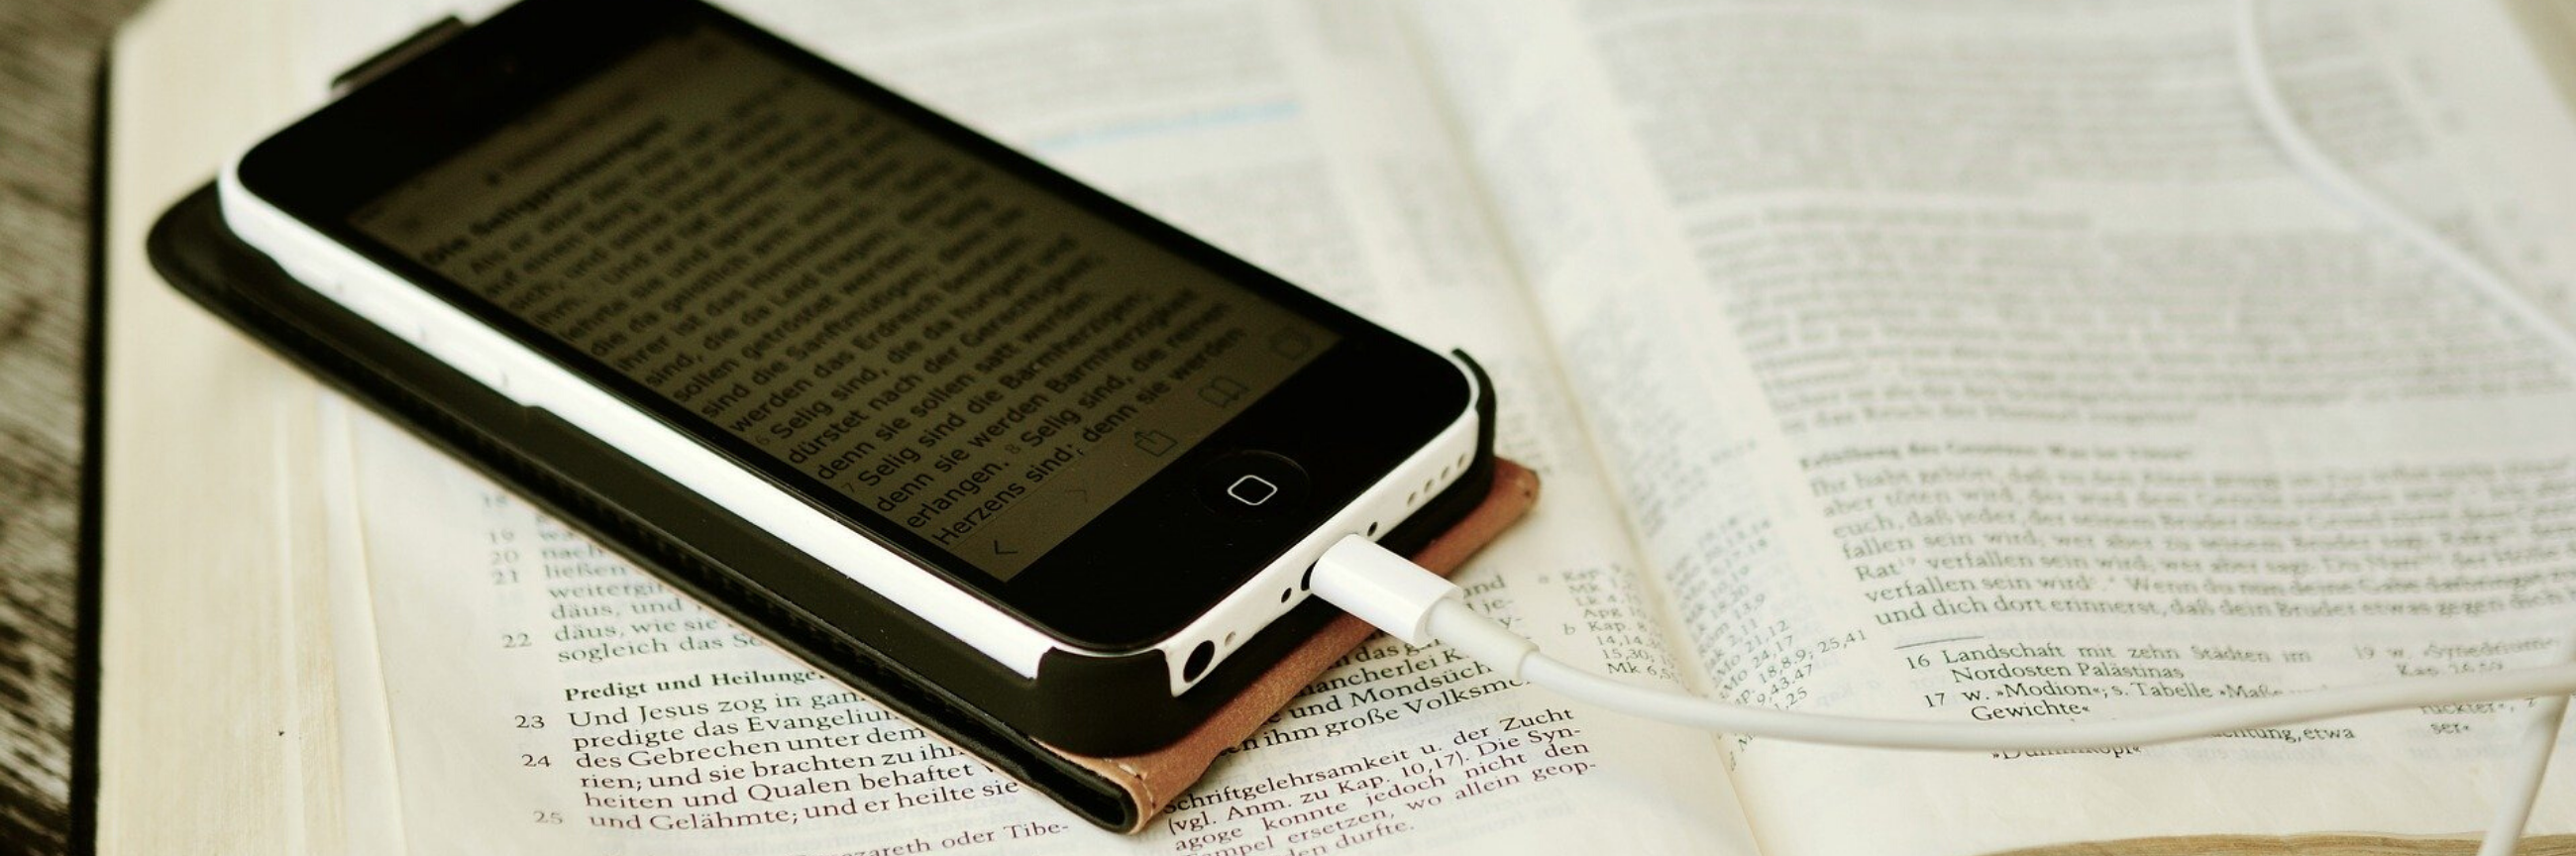 Iphone on top of bible